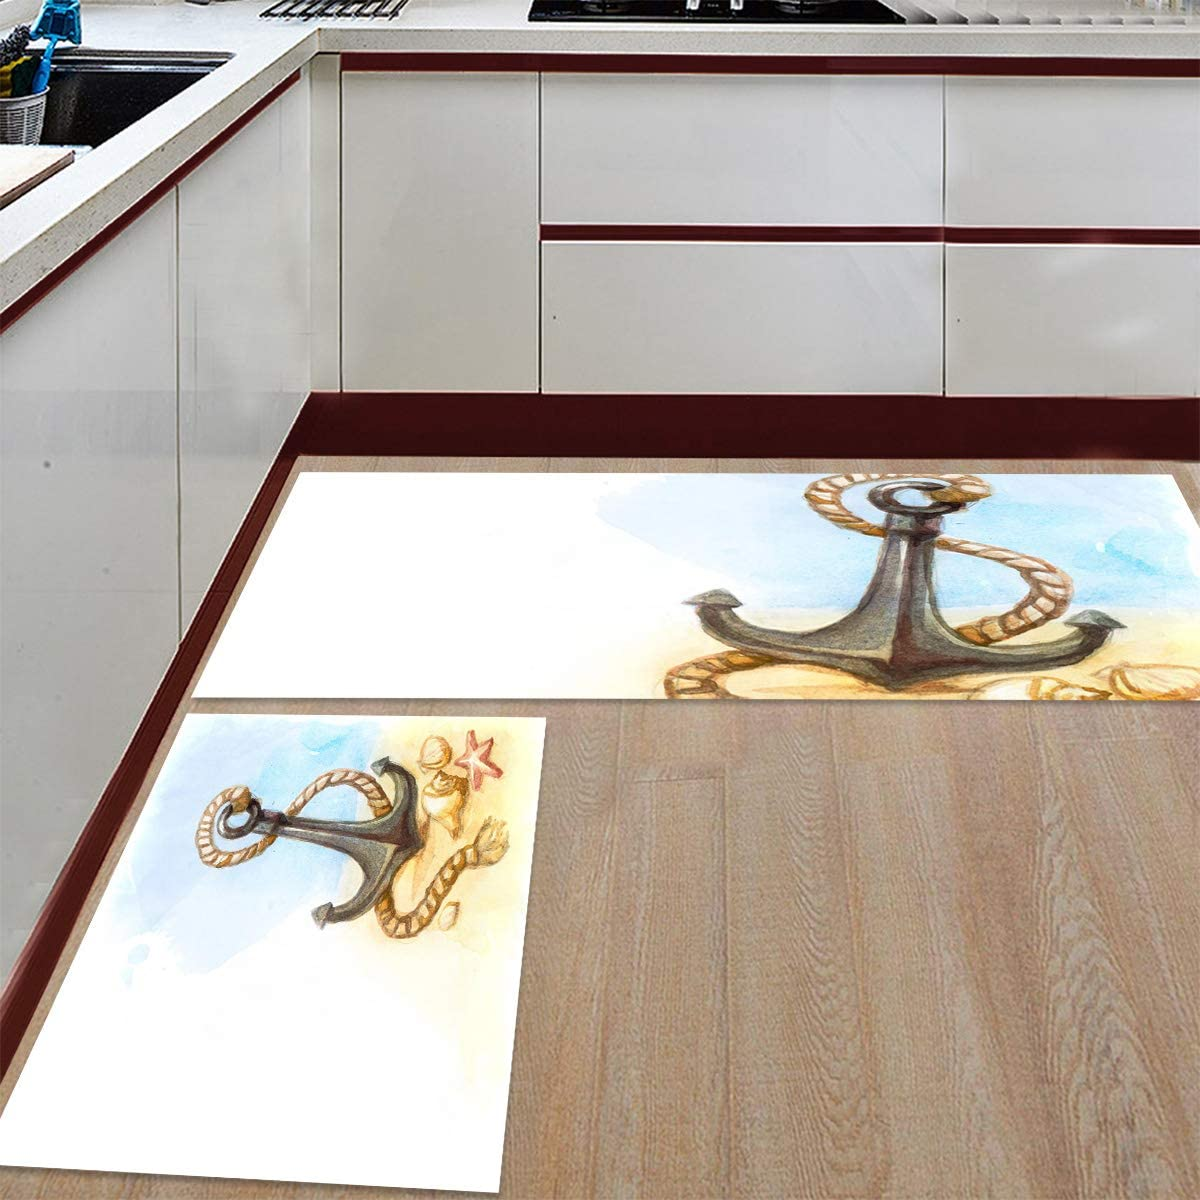 Advancey 2 Pieces Anti-Slip Directly managed store Kitchen Bei Mats Seattle Mall Watercolor Painting